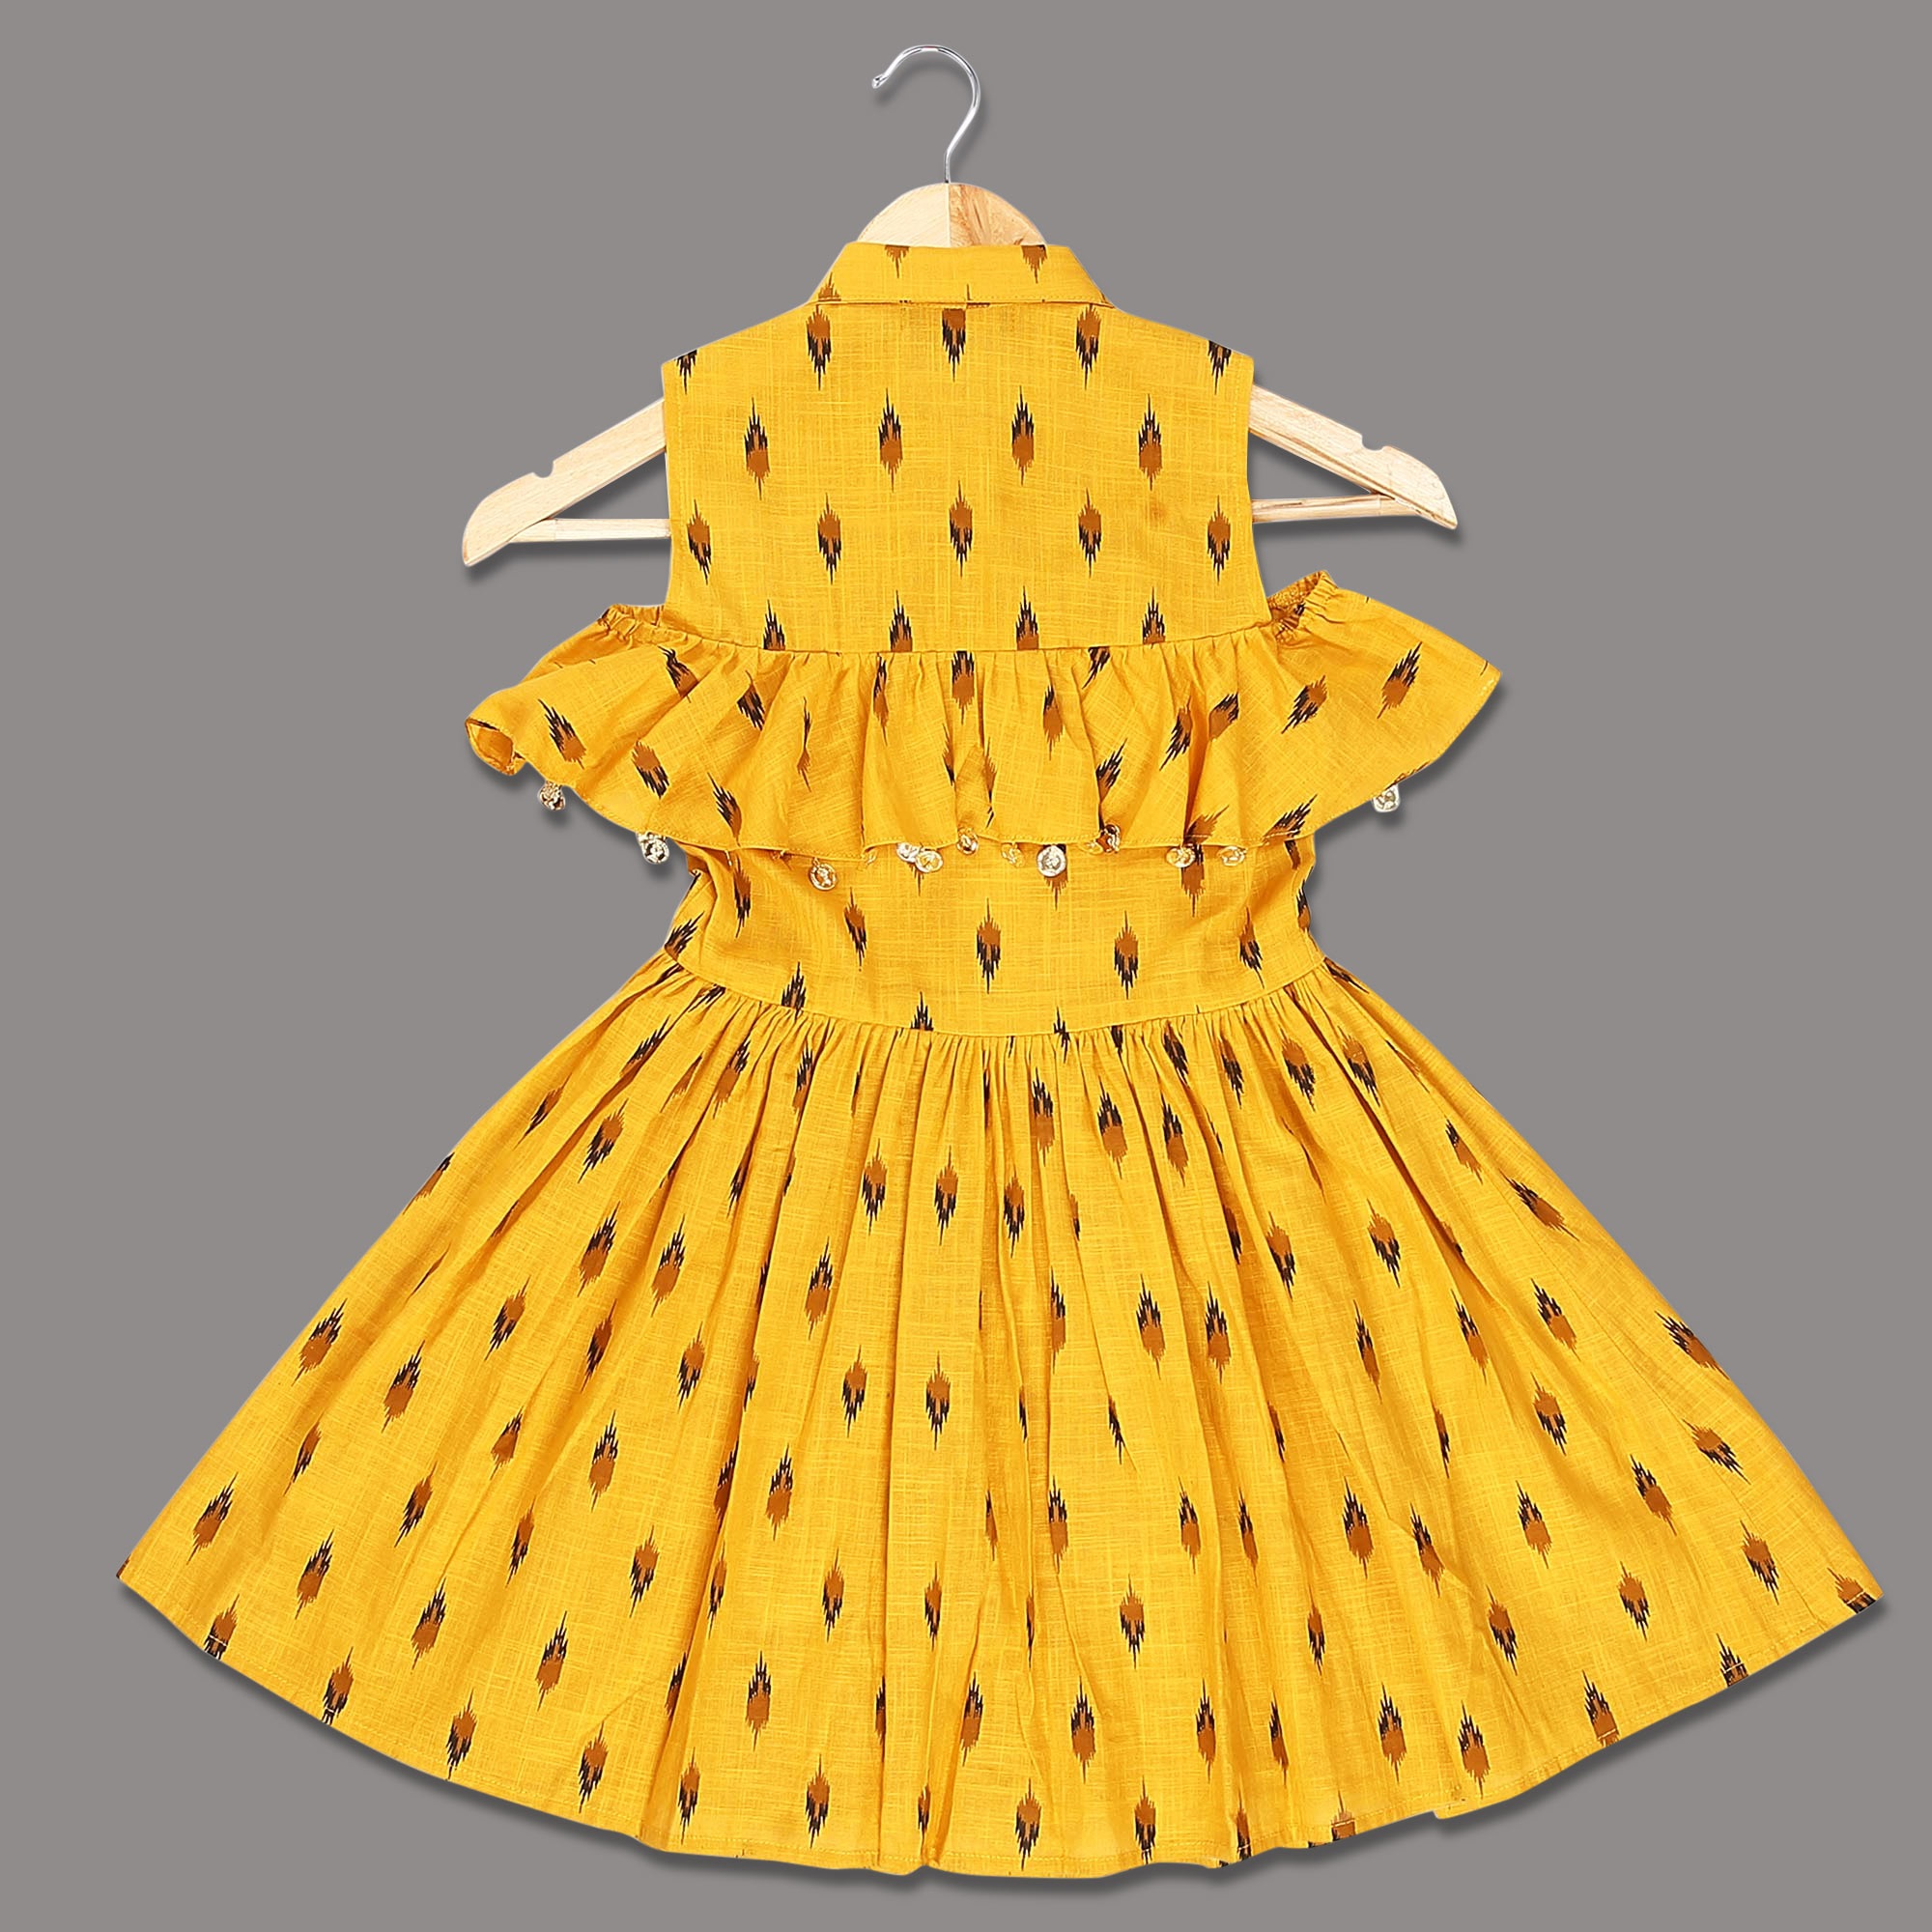 Innovative Yellow Colored Printed Ruffled Cotton Frock